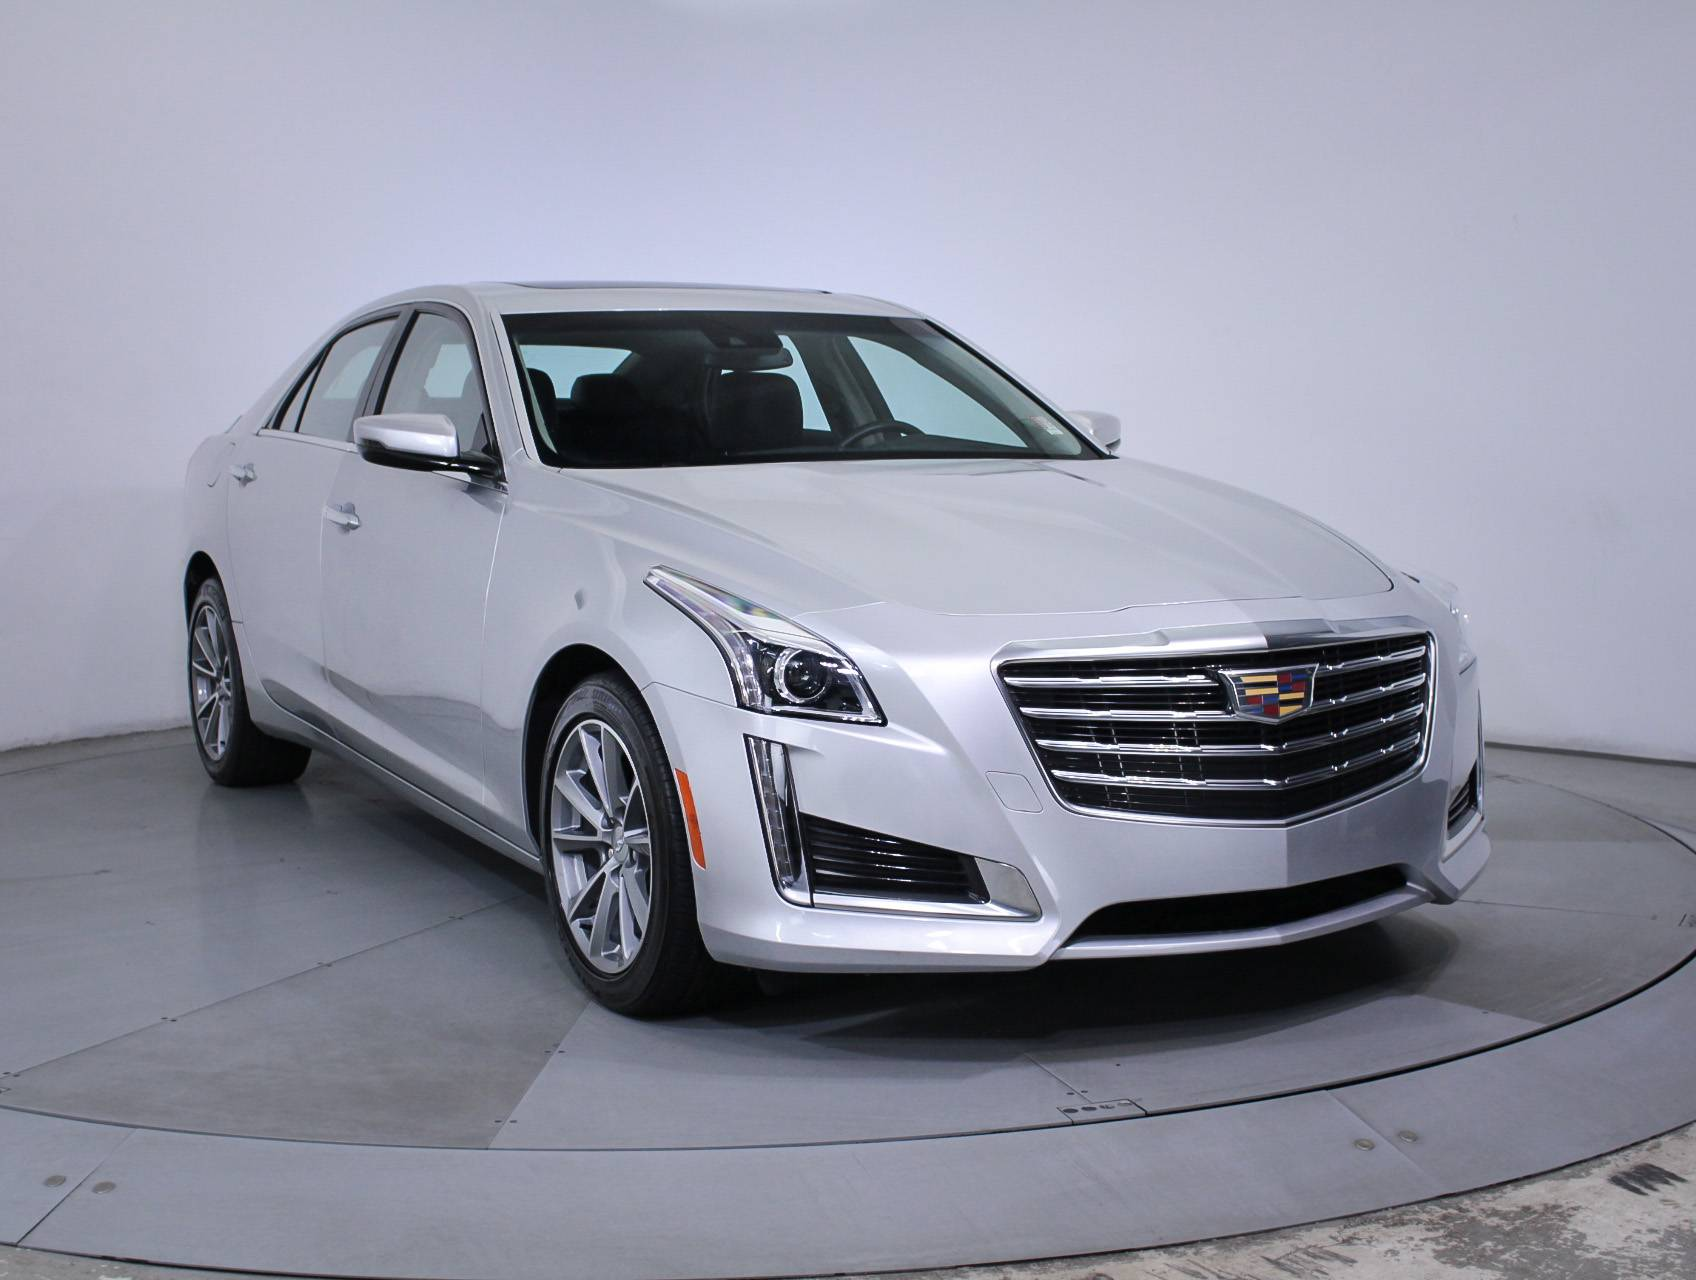 front c cts coupe cars hd used cadillac wallpaper v